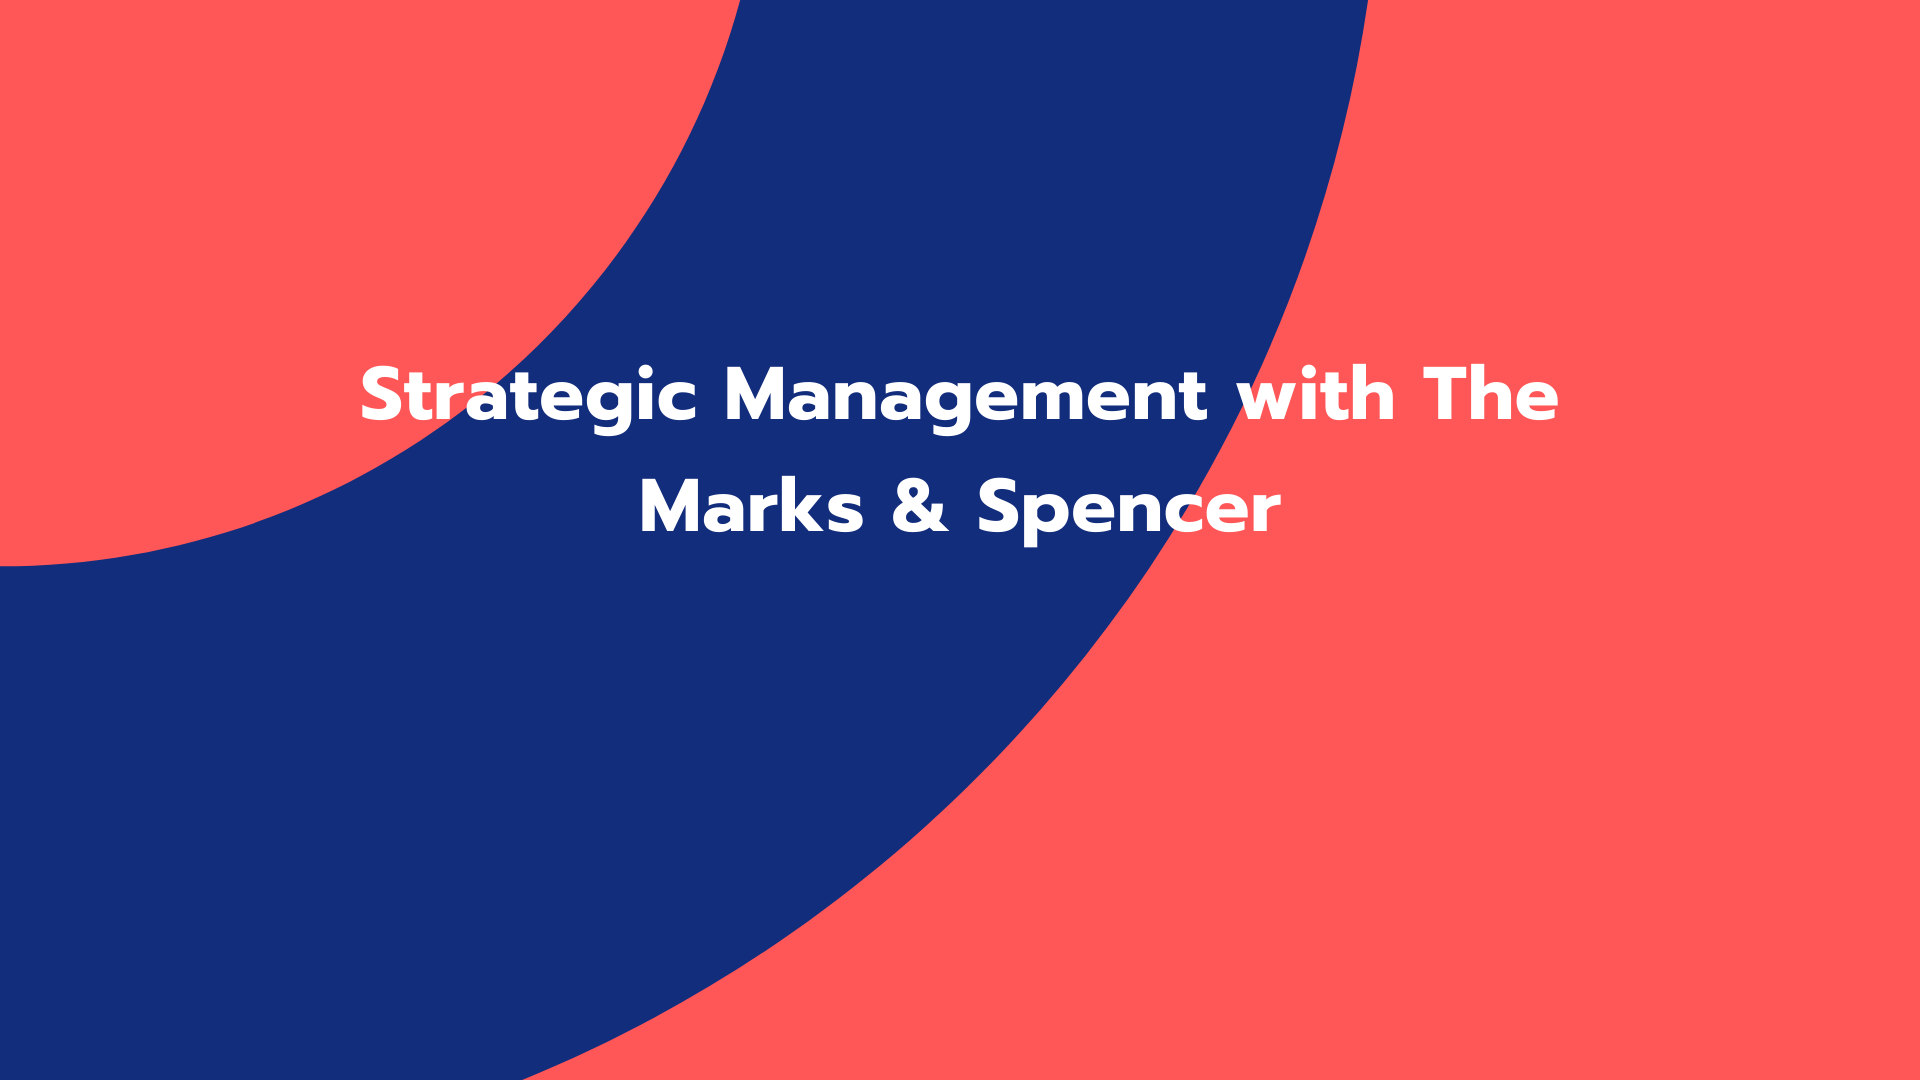 Strategic Management with The Marks & Spencer